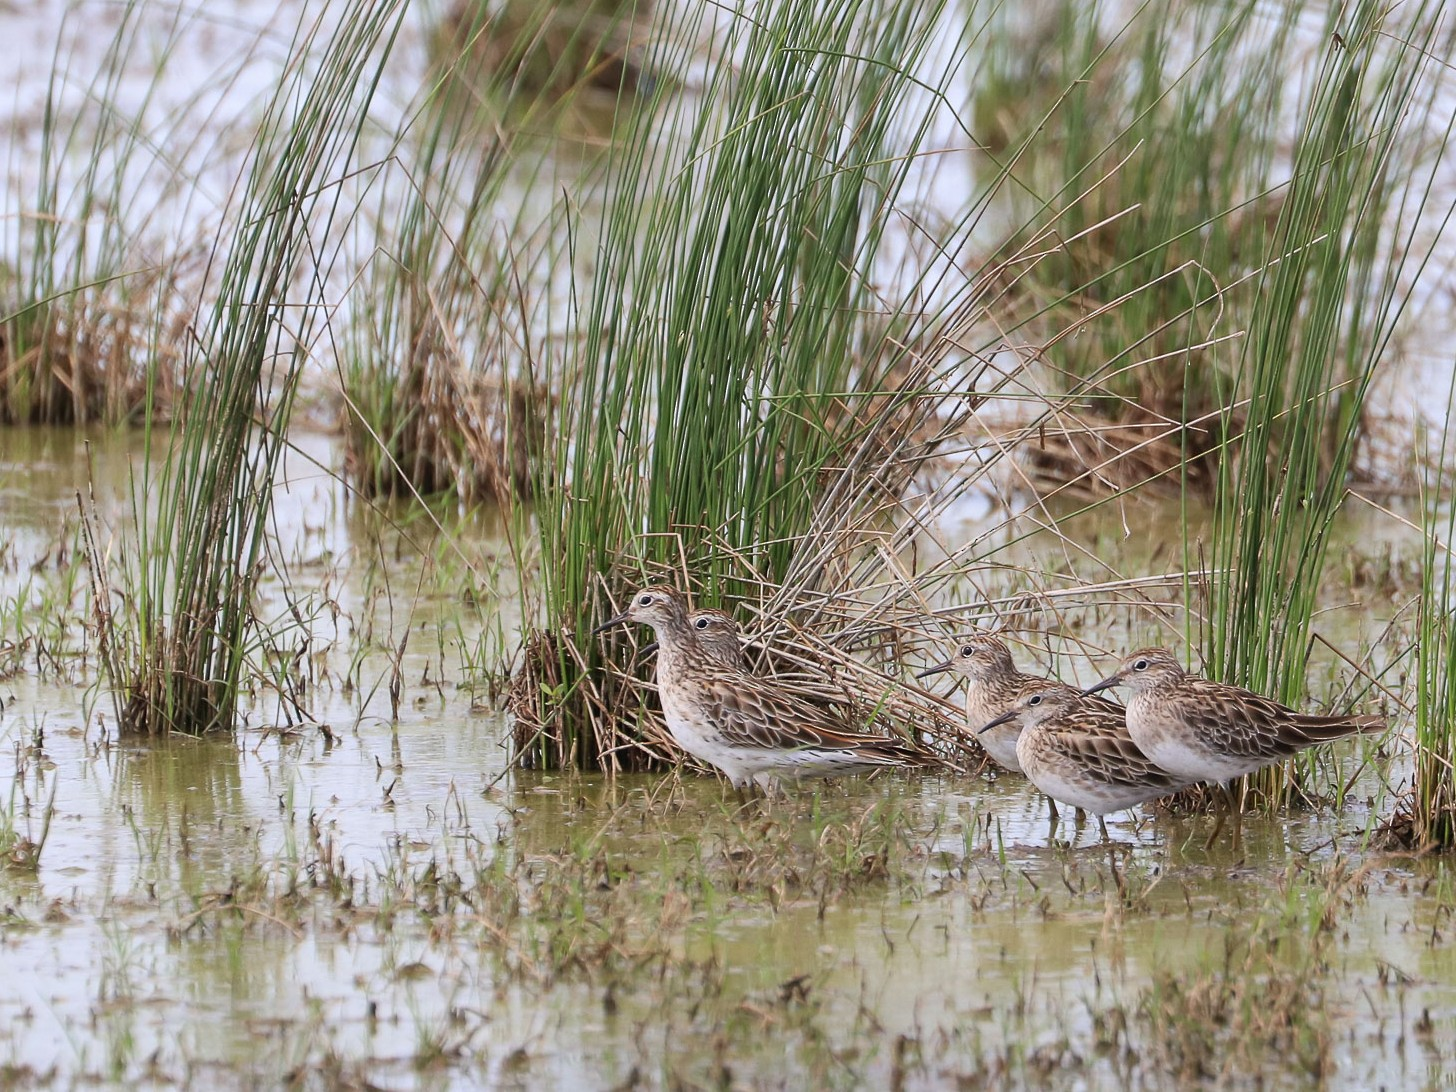 Sharp-tailed Sandpiper - Ged Tranter